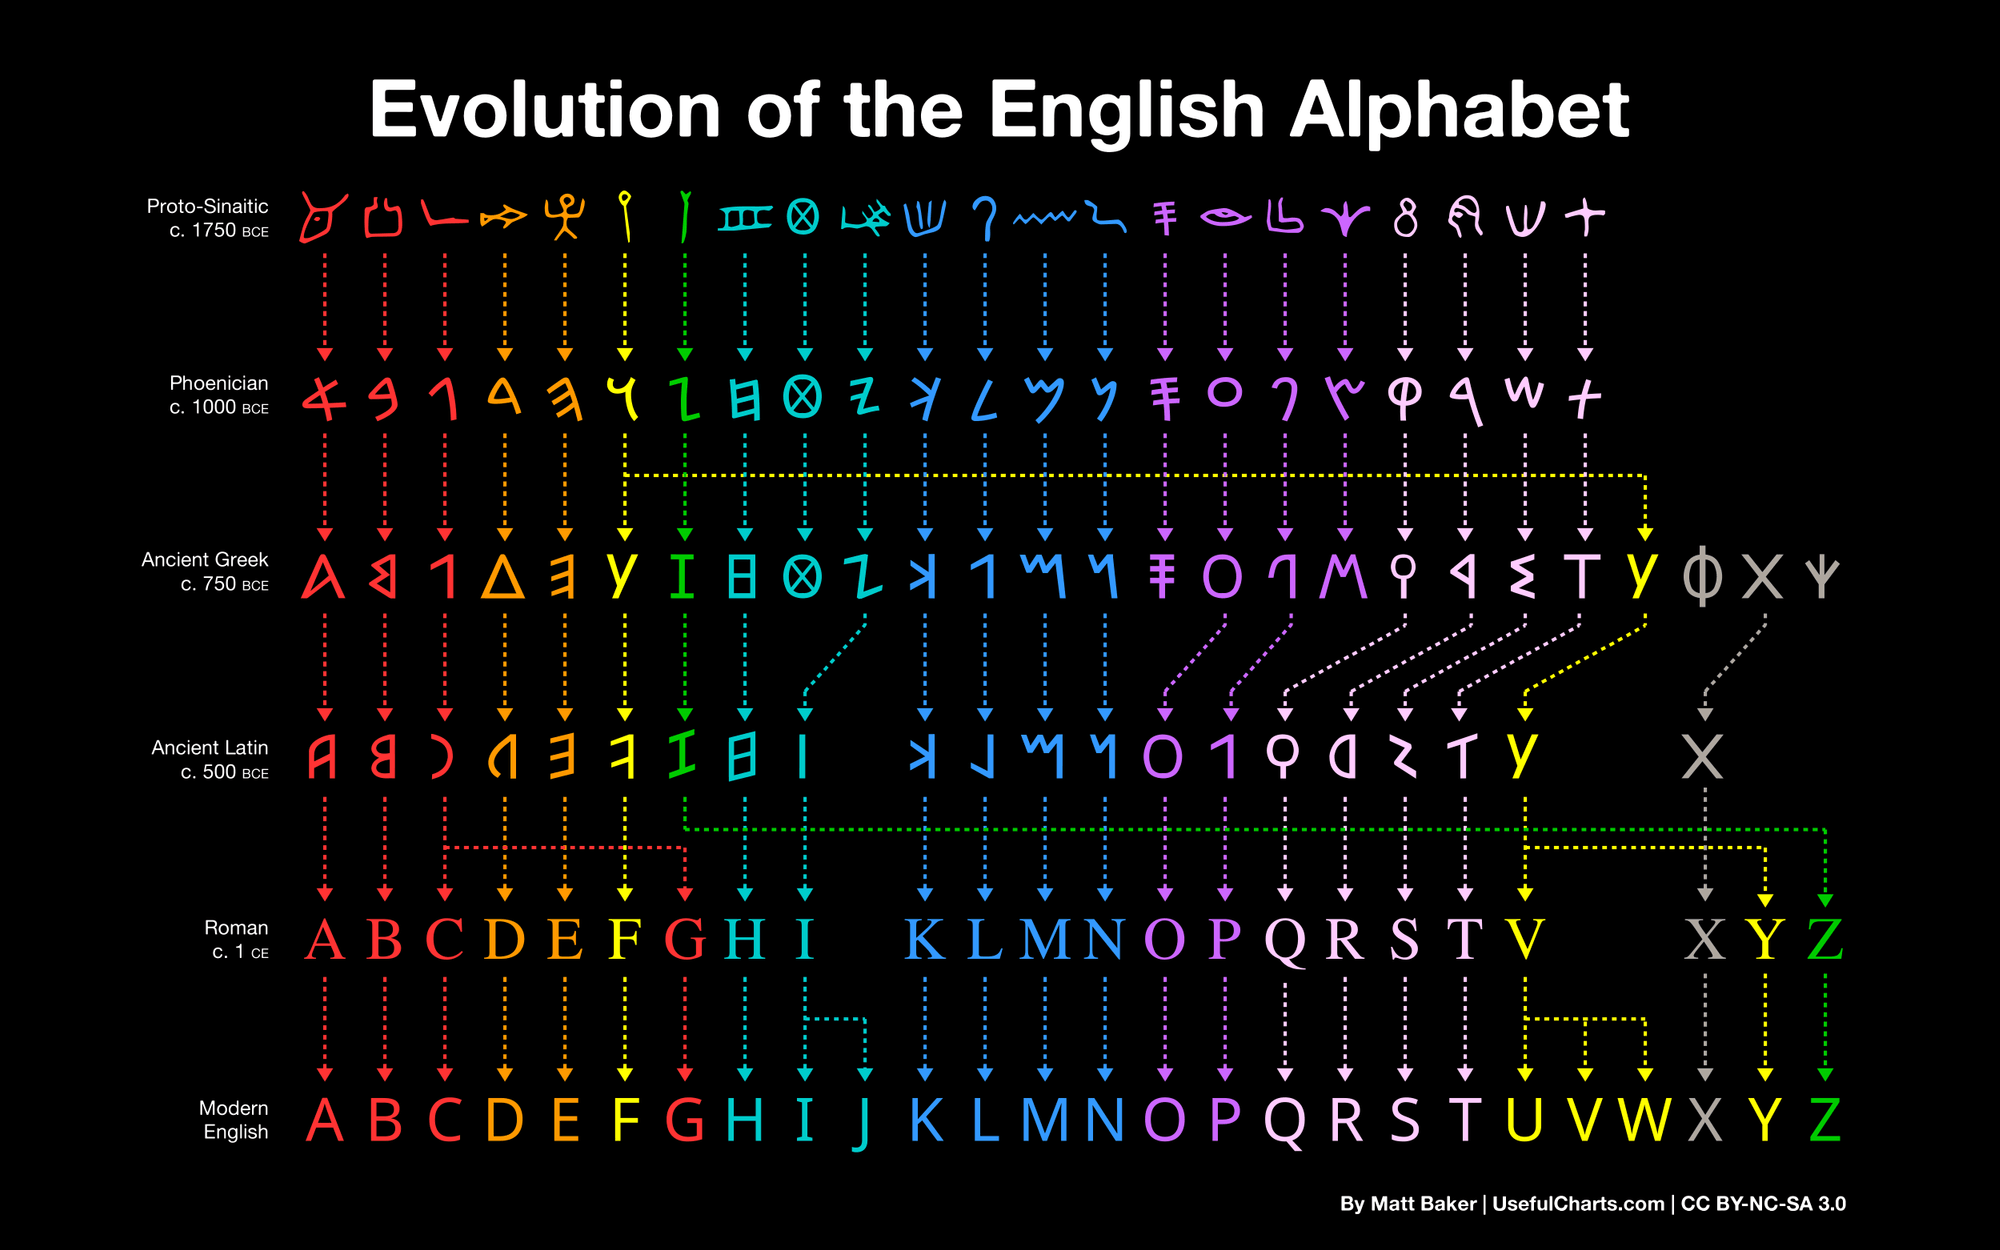 Evolution of English Alphabet